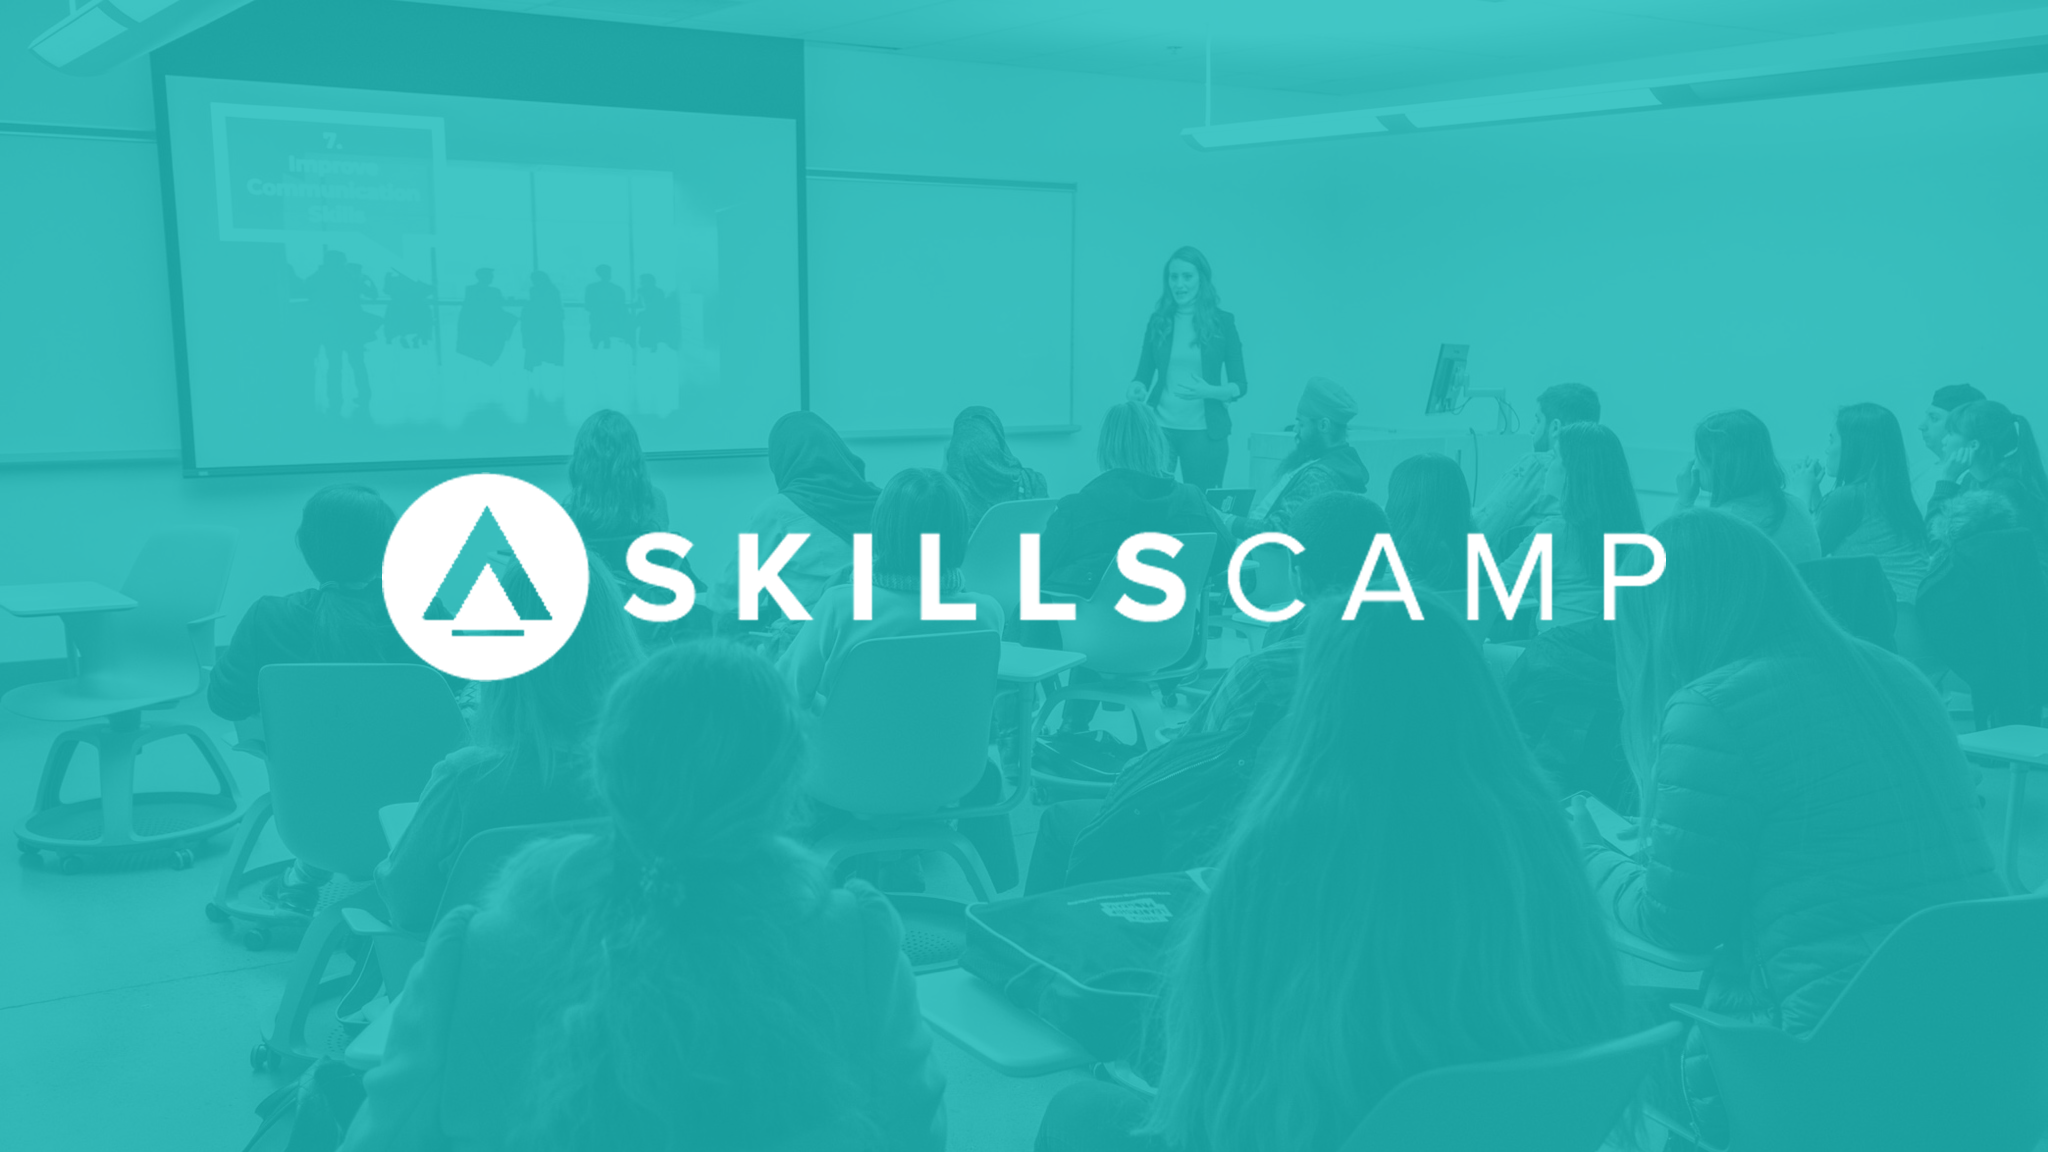 Skillscamp Soft Skills Workshops Webinars Corporate Training